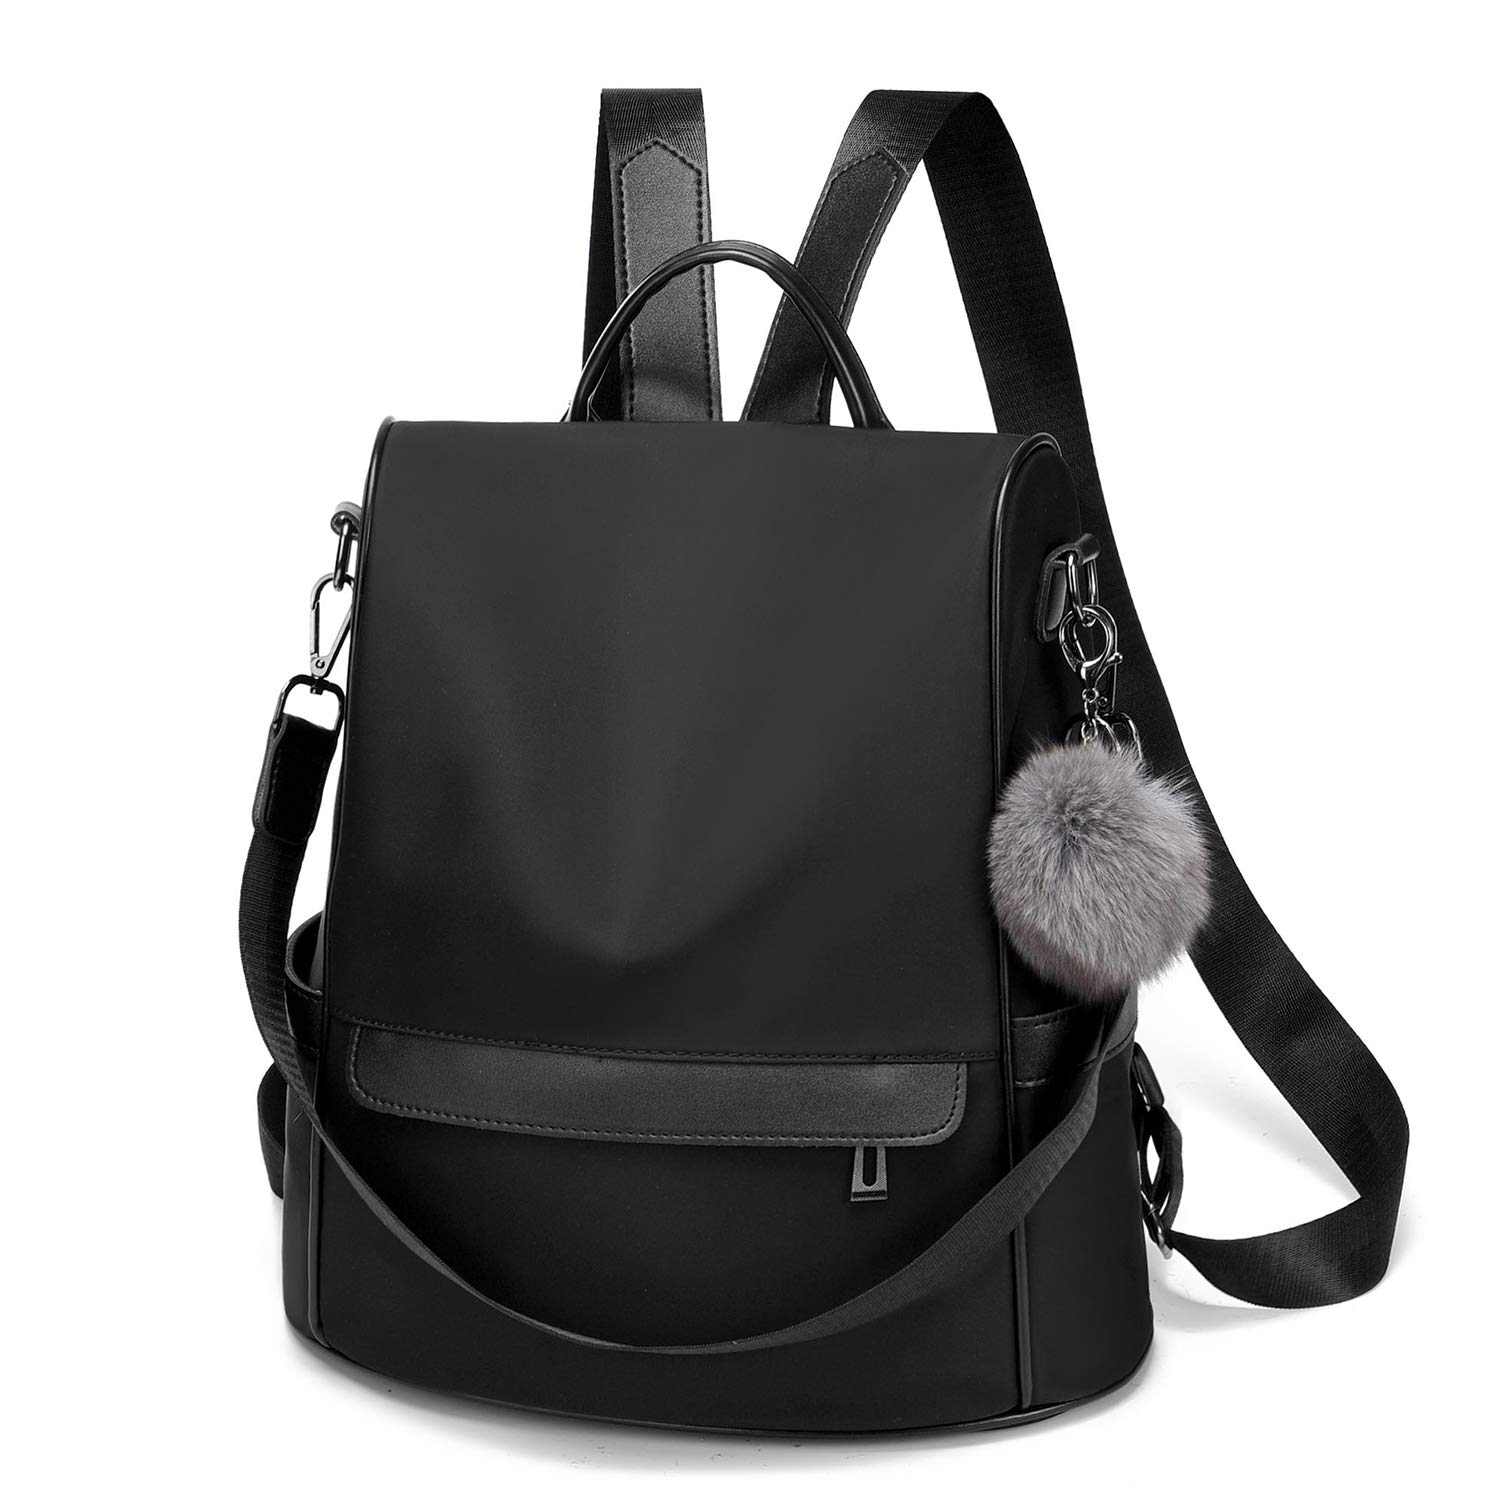 provide plenty of kid new Women Backpack Purse Nylon Anti-theft Fashion Casual Lightweight Travel  School Shoulder Bag